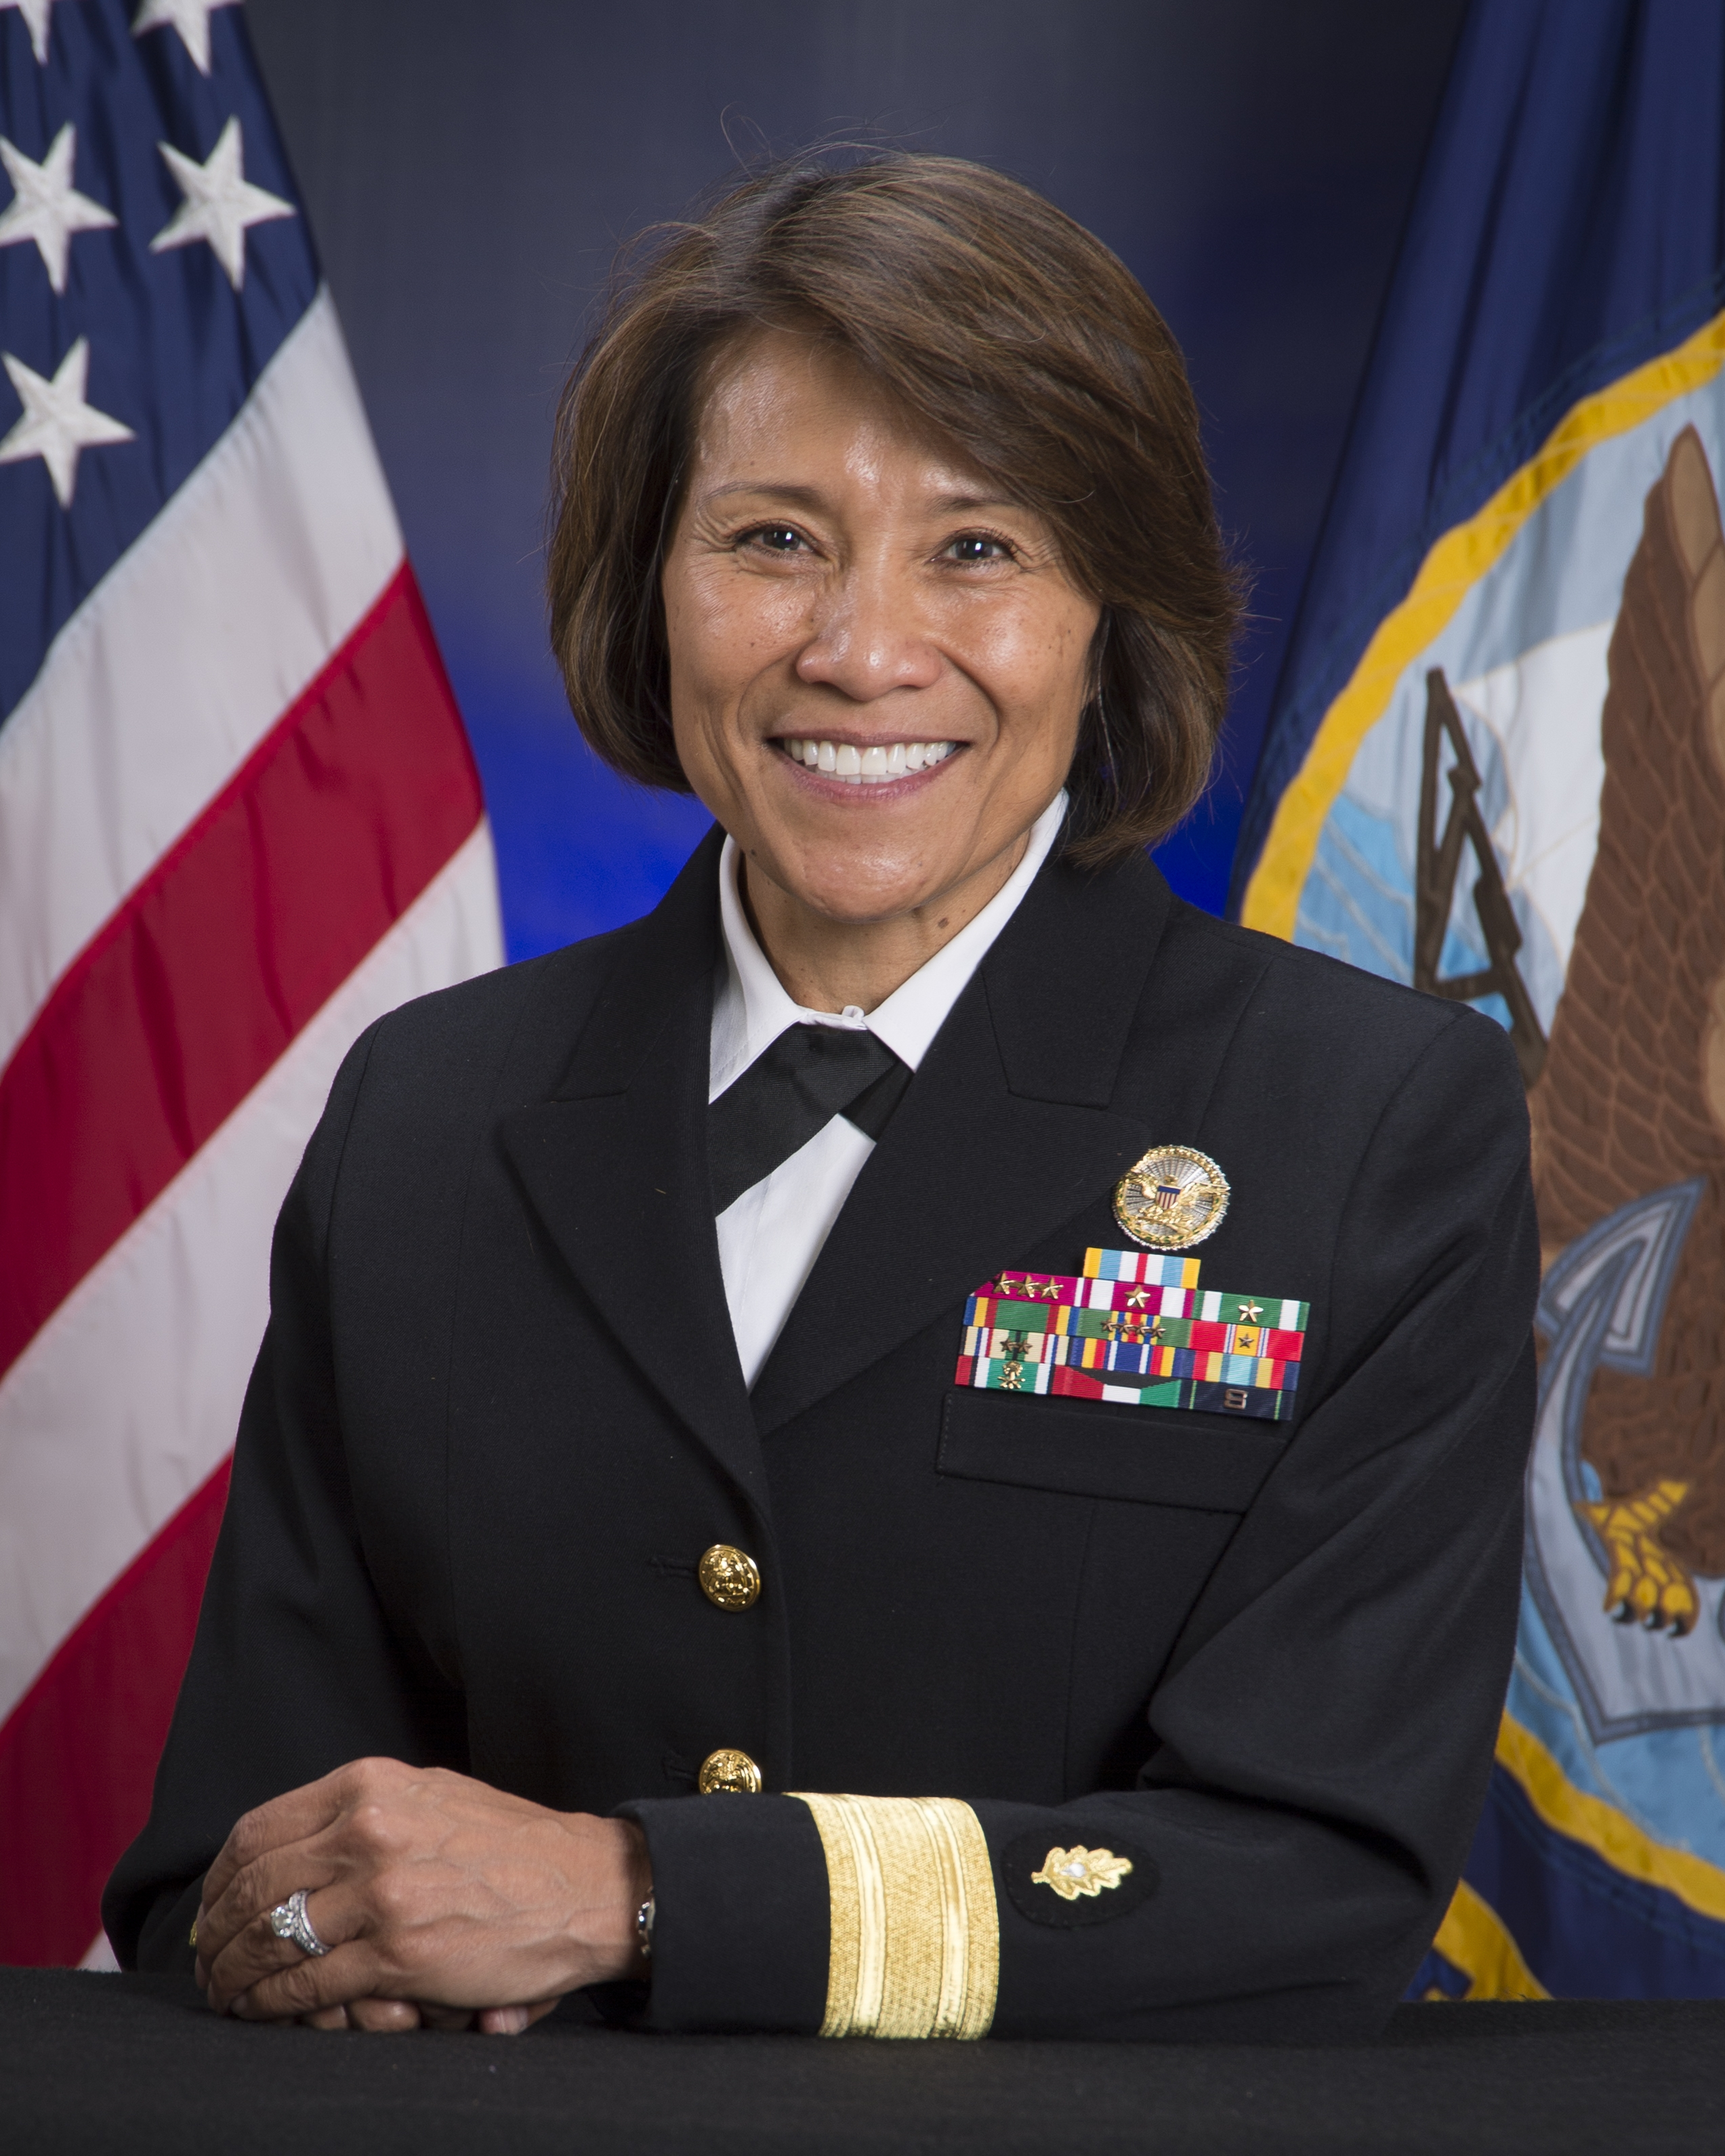 Rear Admiral Raquel Bono, Chief, Medical Corps, United States Navy (Photo courtesy of the U.S. Navy)